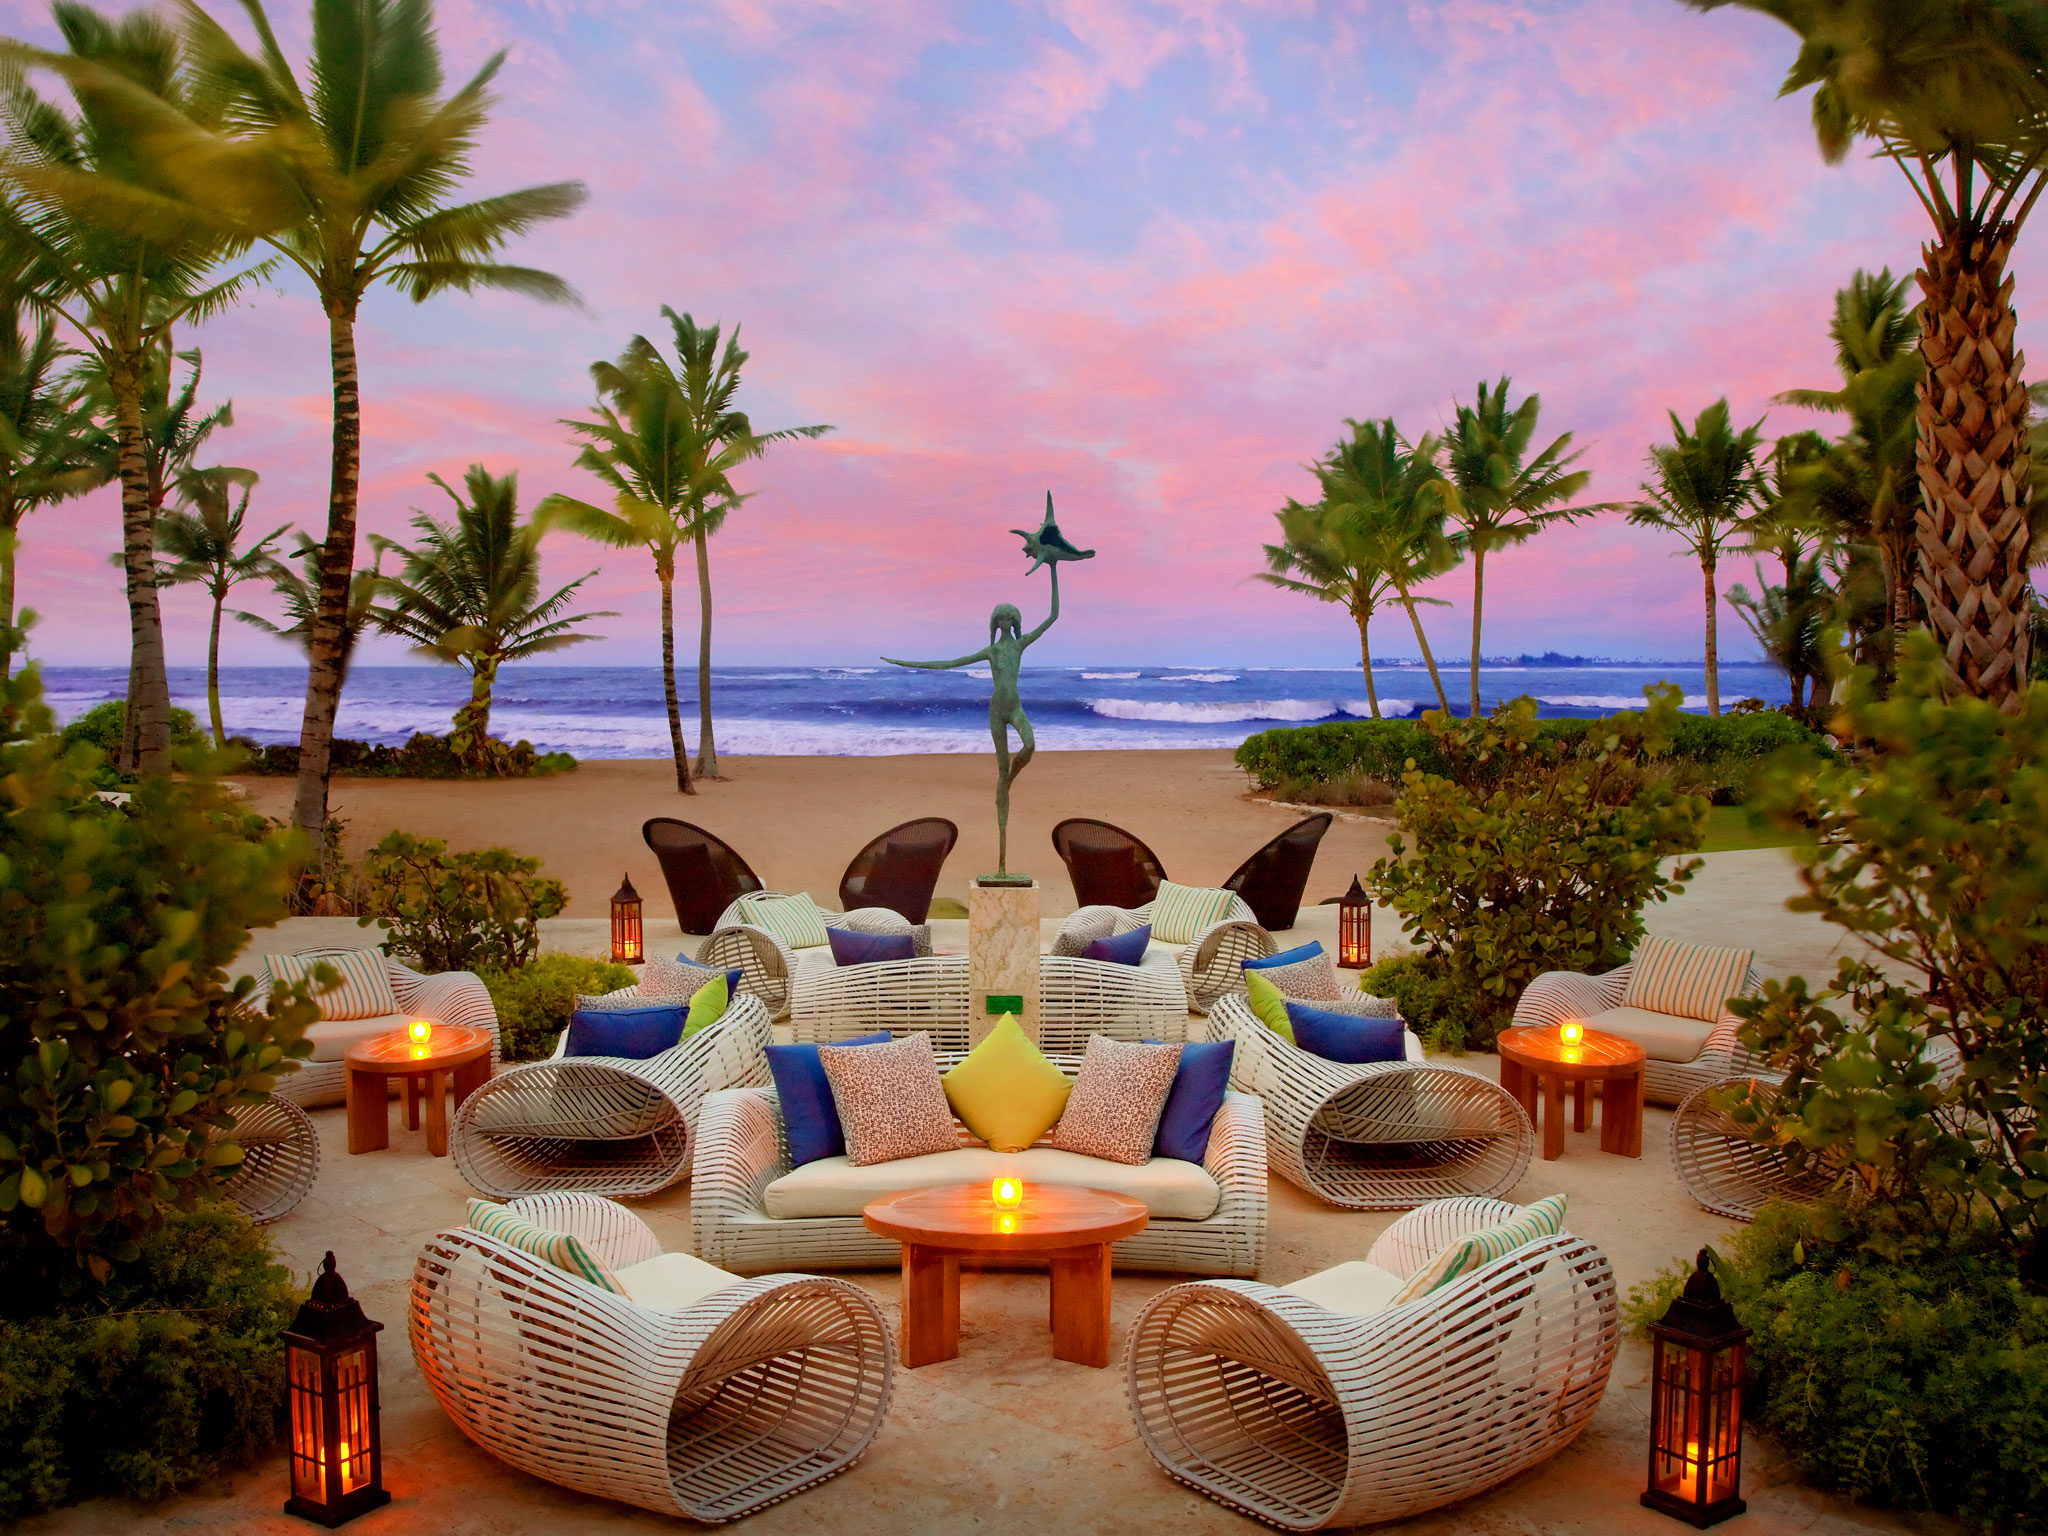 The St Regis Bahia Beach Resort, Puerto Rico - Reopens October 29, 2018This is the top of the luxury and sophistication at The St. Regis Bahia Beach Resort, Puerto Rico, the first AAA Five Diamond resort in Puerto Rico. Embrace the romantic setting of a Caribbean coconut plantation nestled between a lush national forest and the sparkling sea at one of the most luxurious Puerto Rico resorts. Experience refined exclusiveness and iconic Butler service for all guestsDistance to the airport 40 minutes